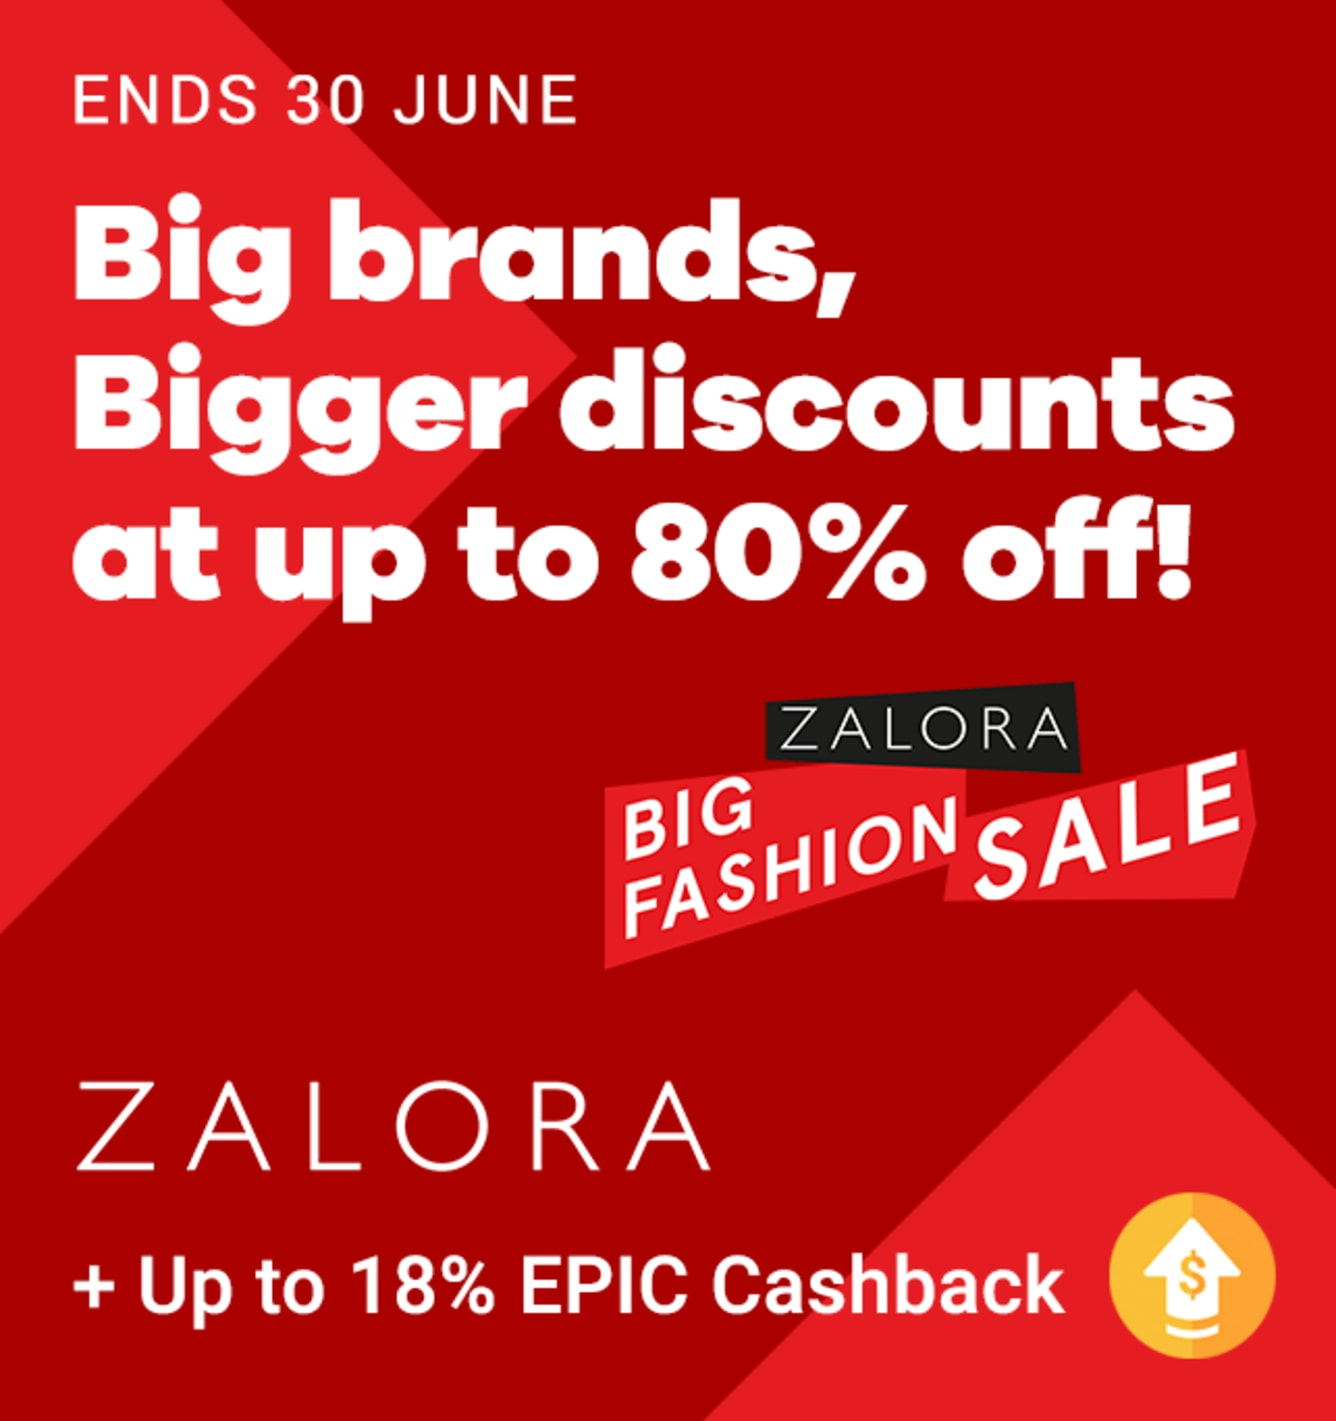 Zalora Sundays Up to 13.5% Upsized Cashback